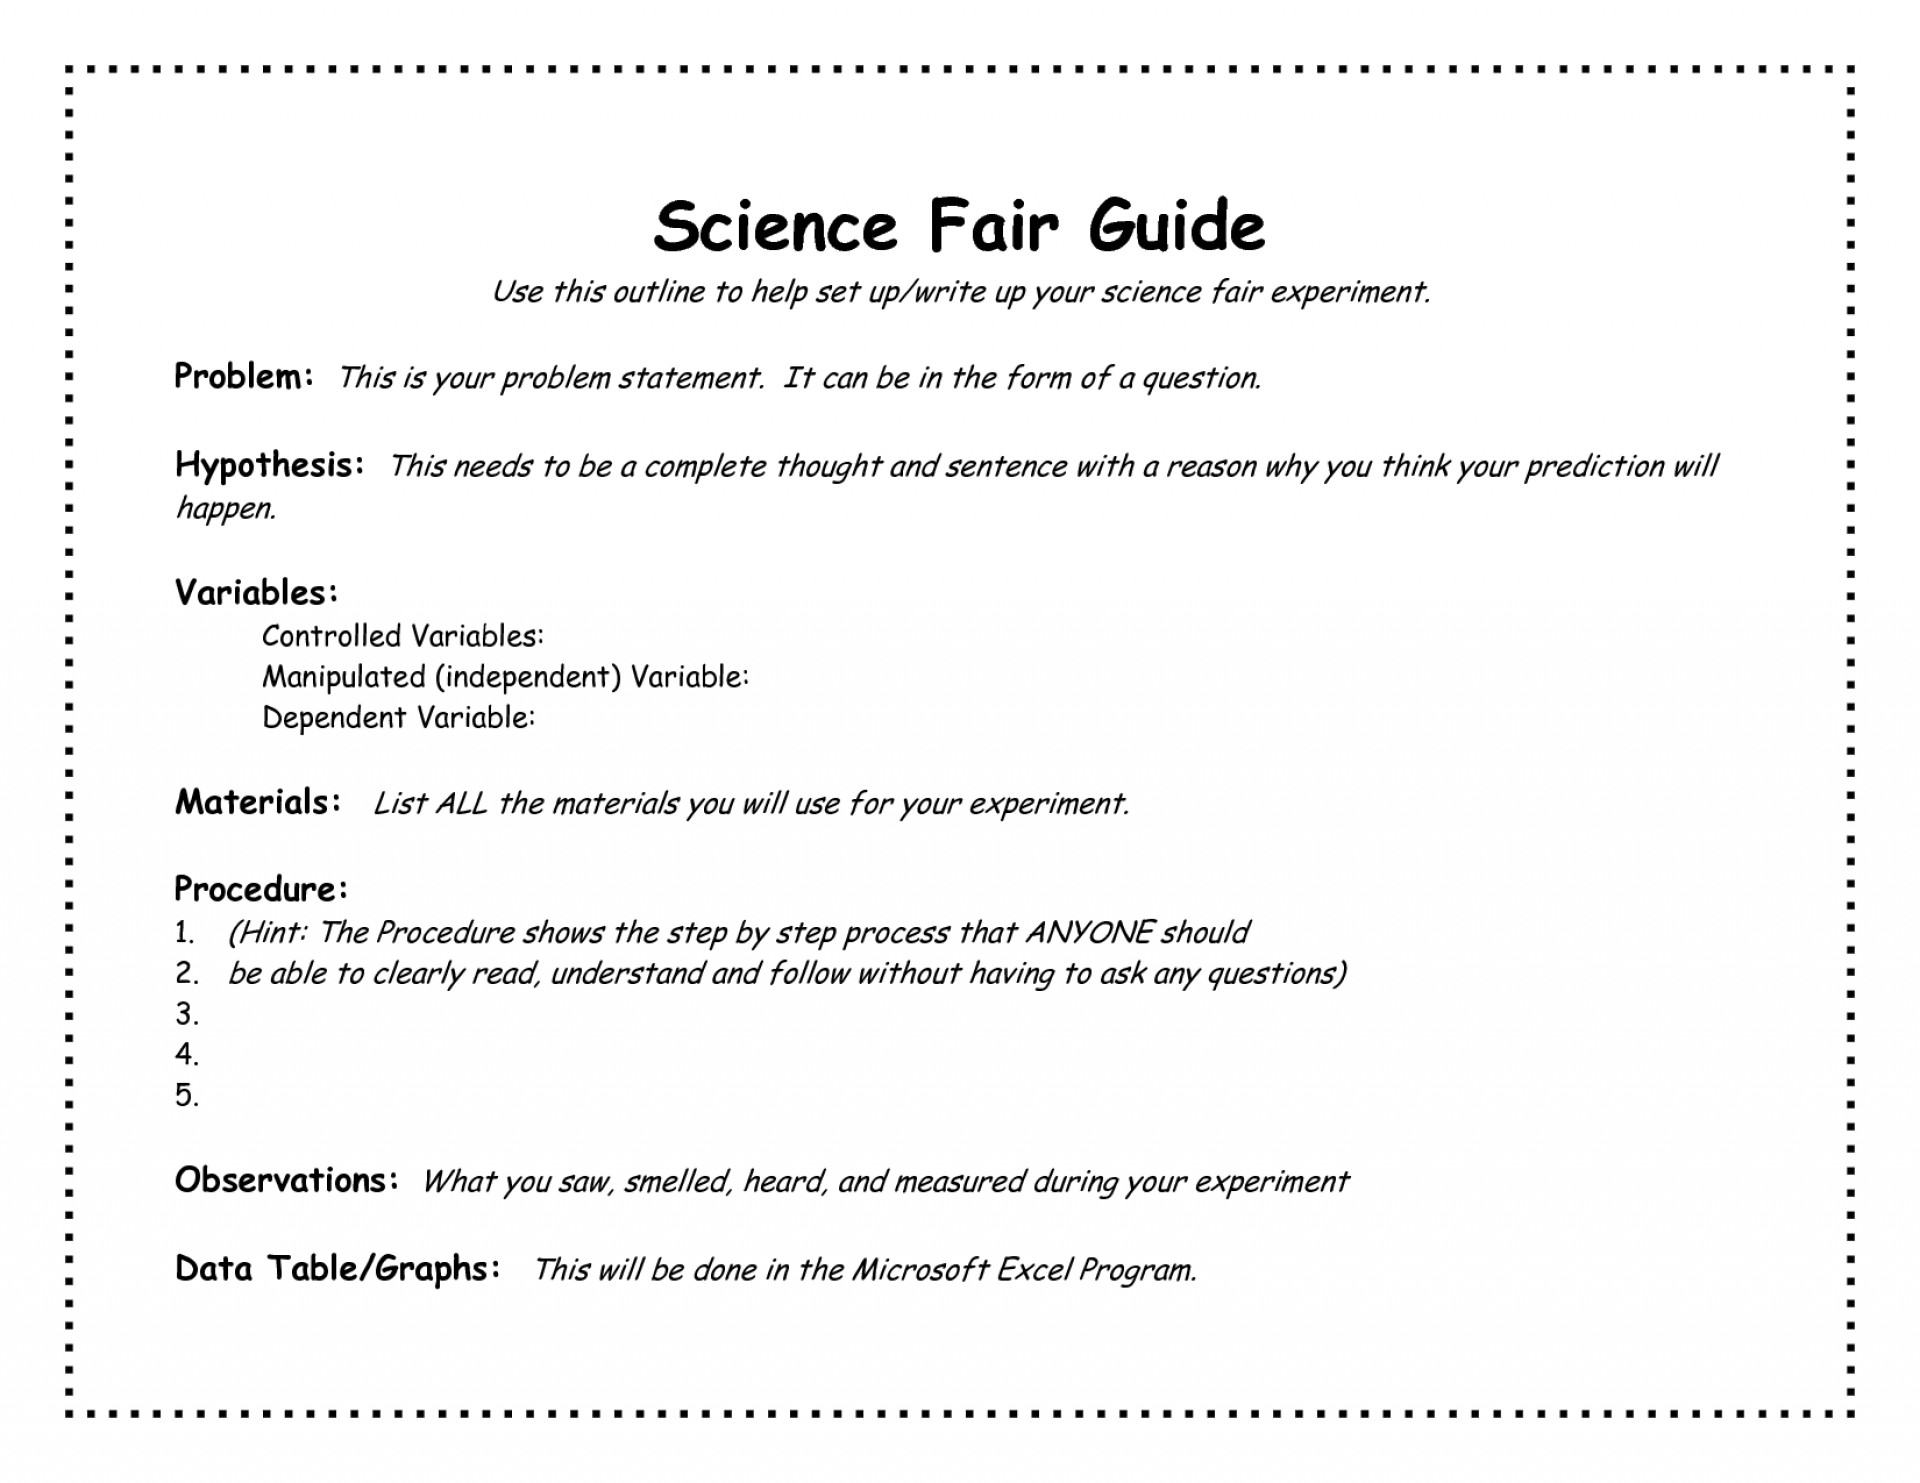 005 Science Fair Researchs Best Research Papers Paper Example For Sixth Grade Middle School 1920